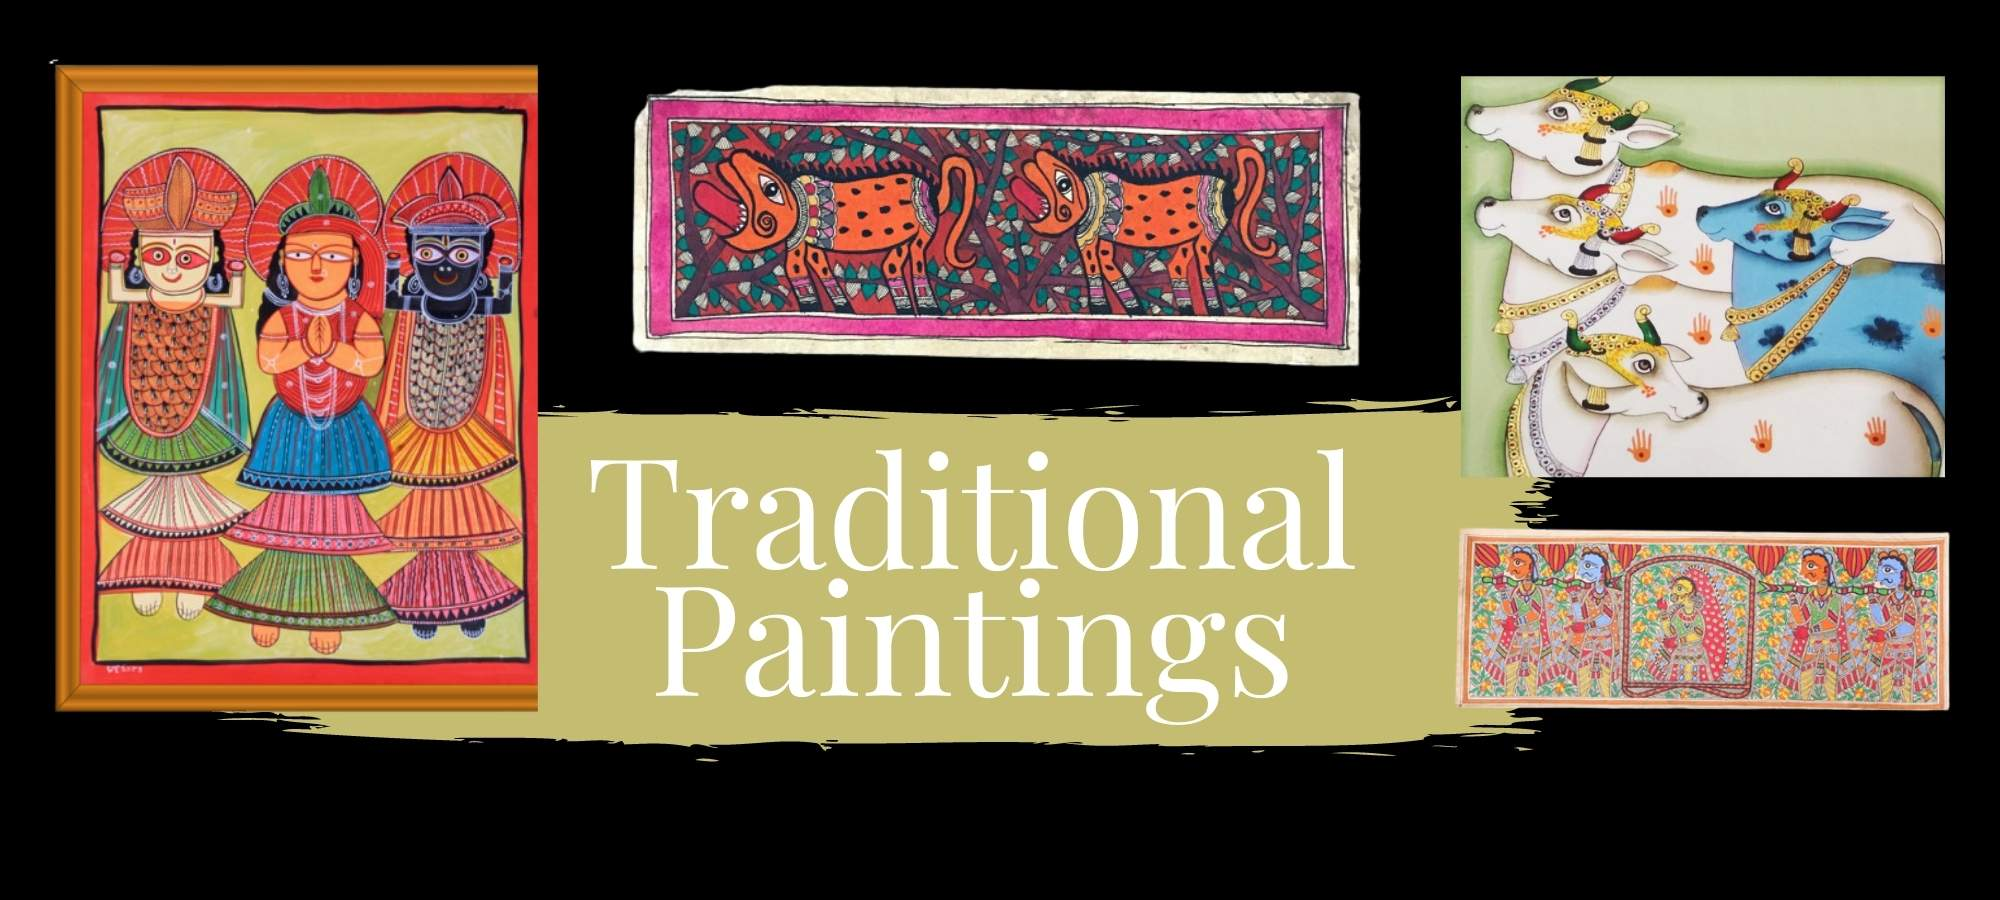 Traditional Paintings